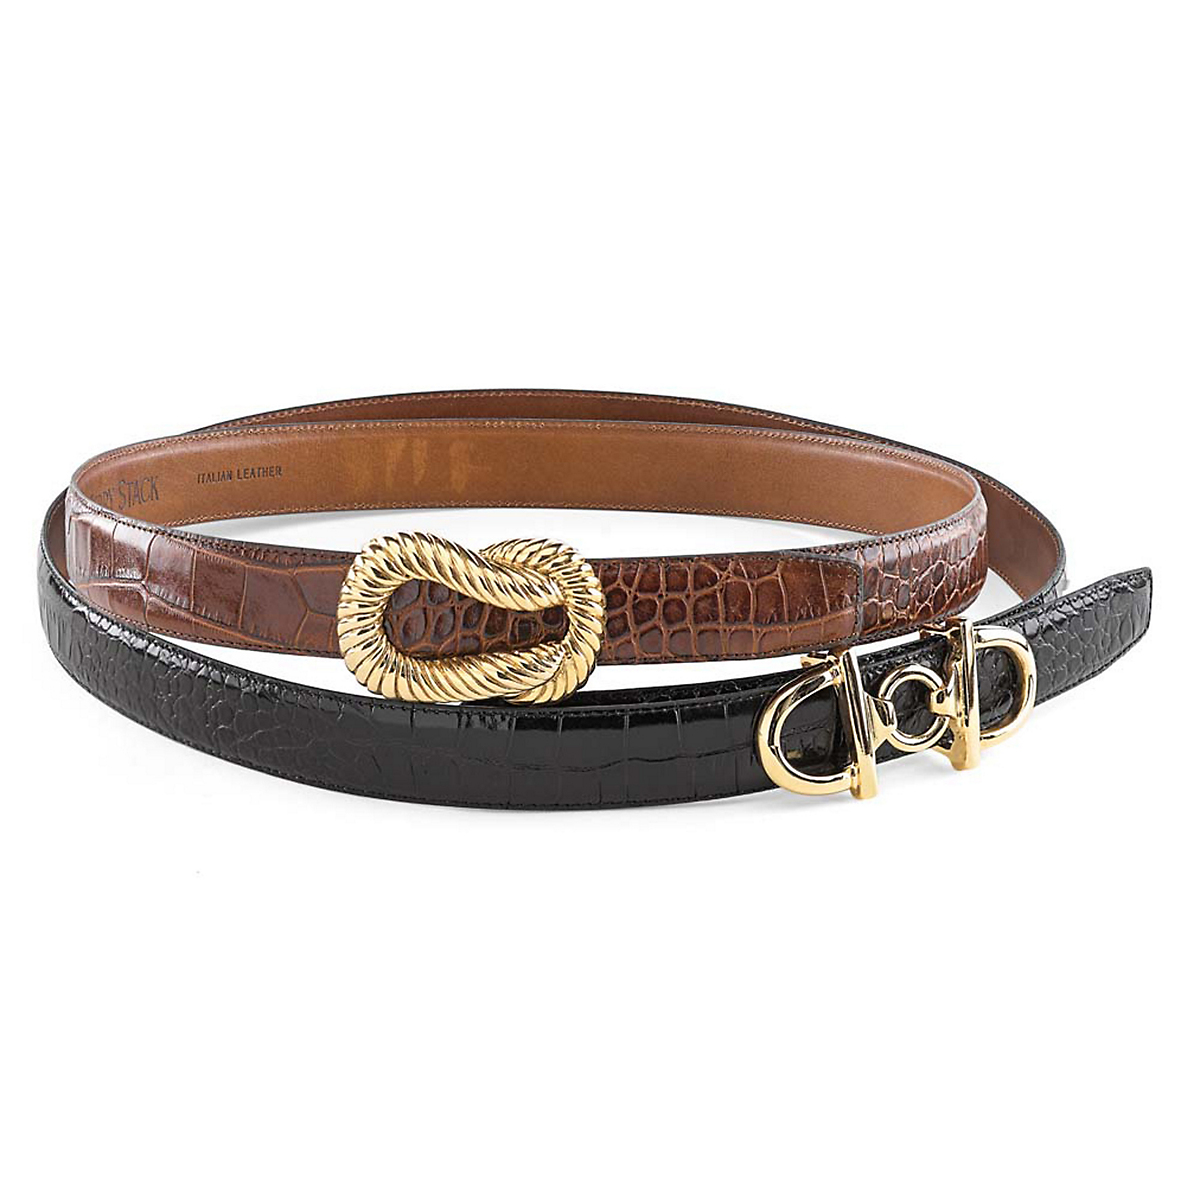 Croc Belts & Decorative Buckles